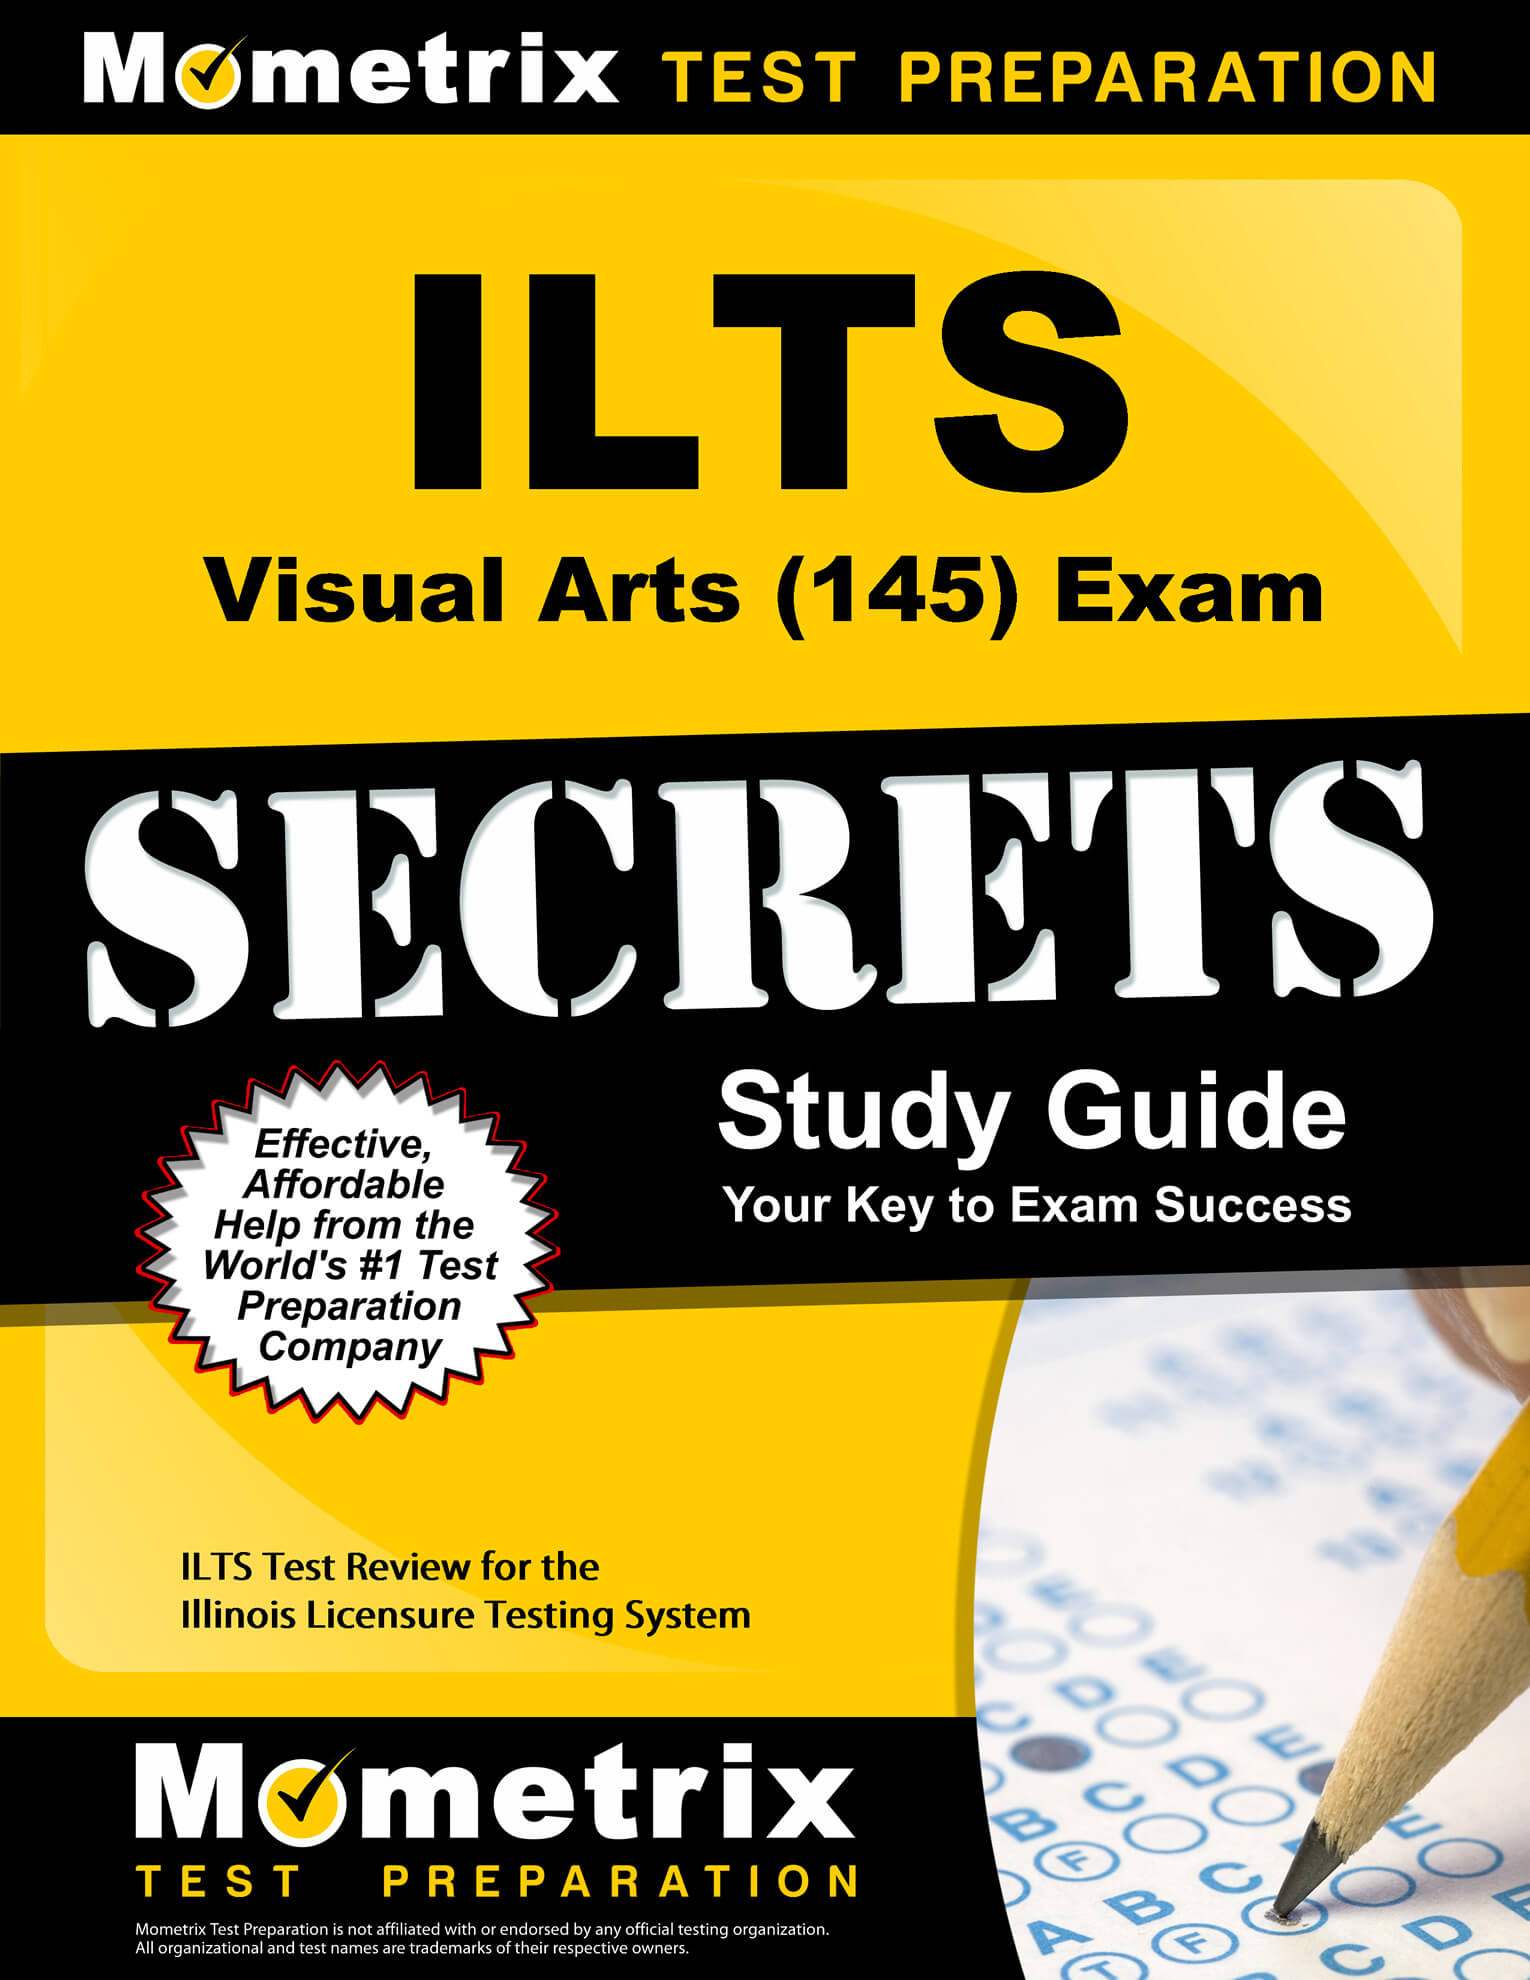 ILTS Visual Arts Study Guide